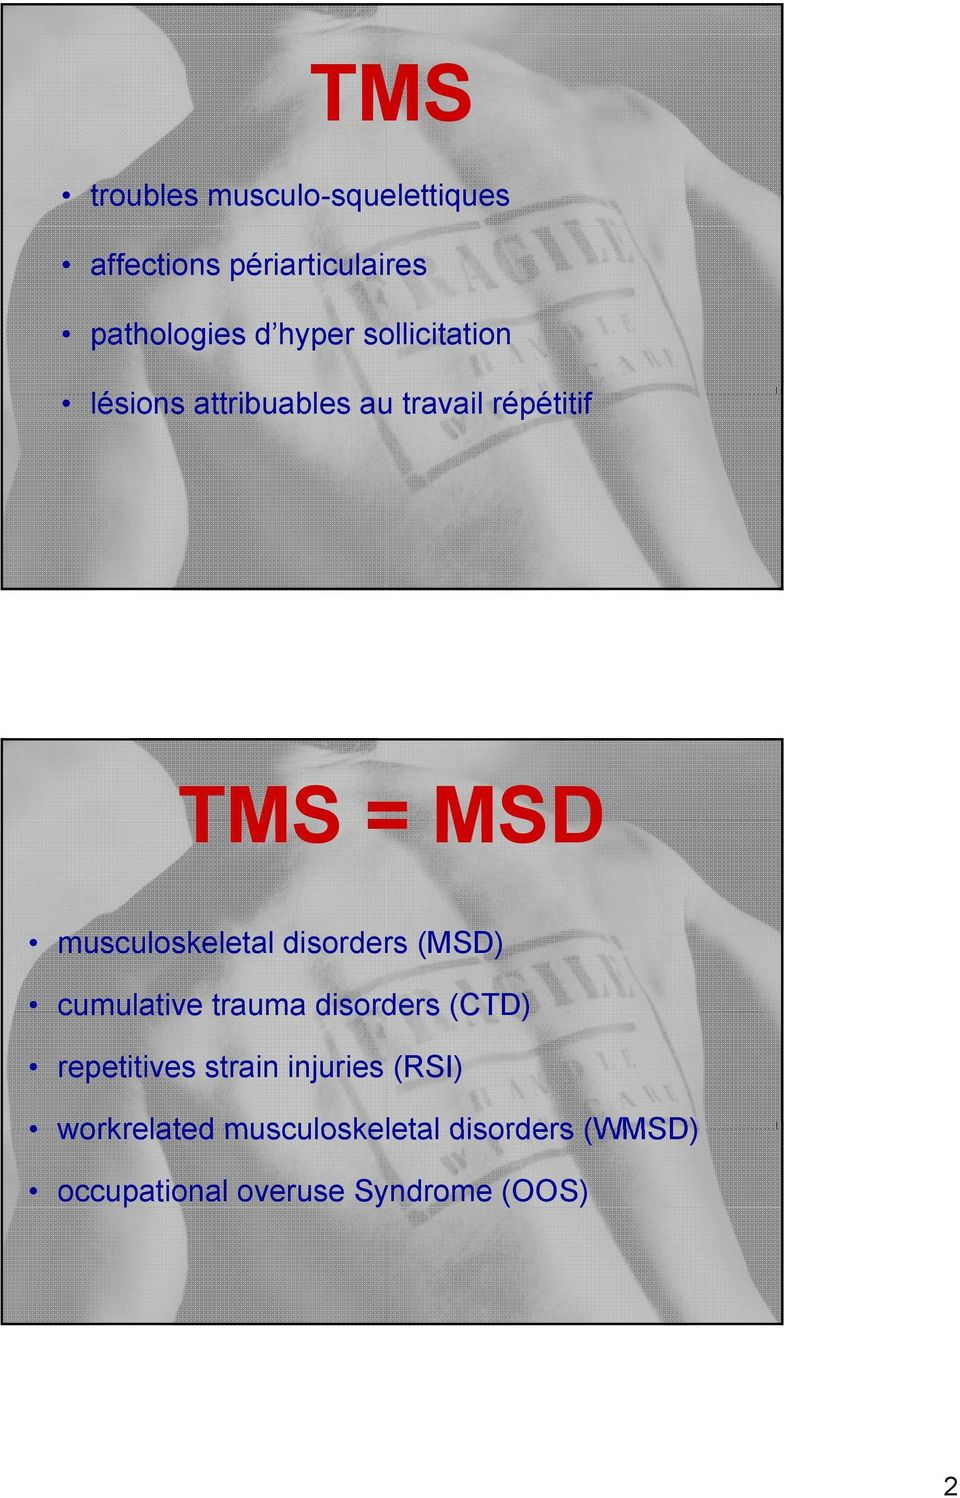 musculoskeletal l l disorders d (MSD) cumulative trauma disorders (CTD) repetitives